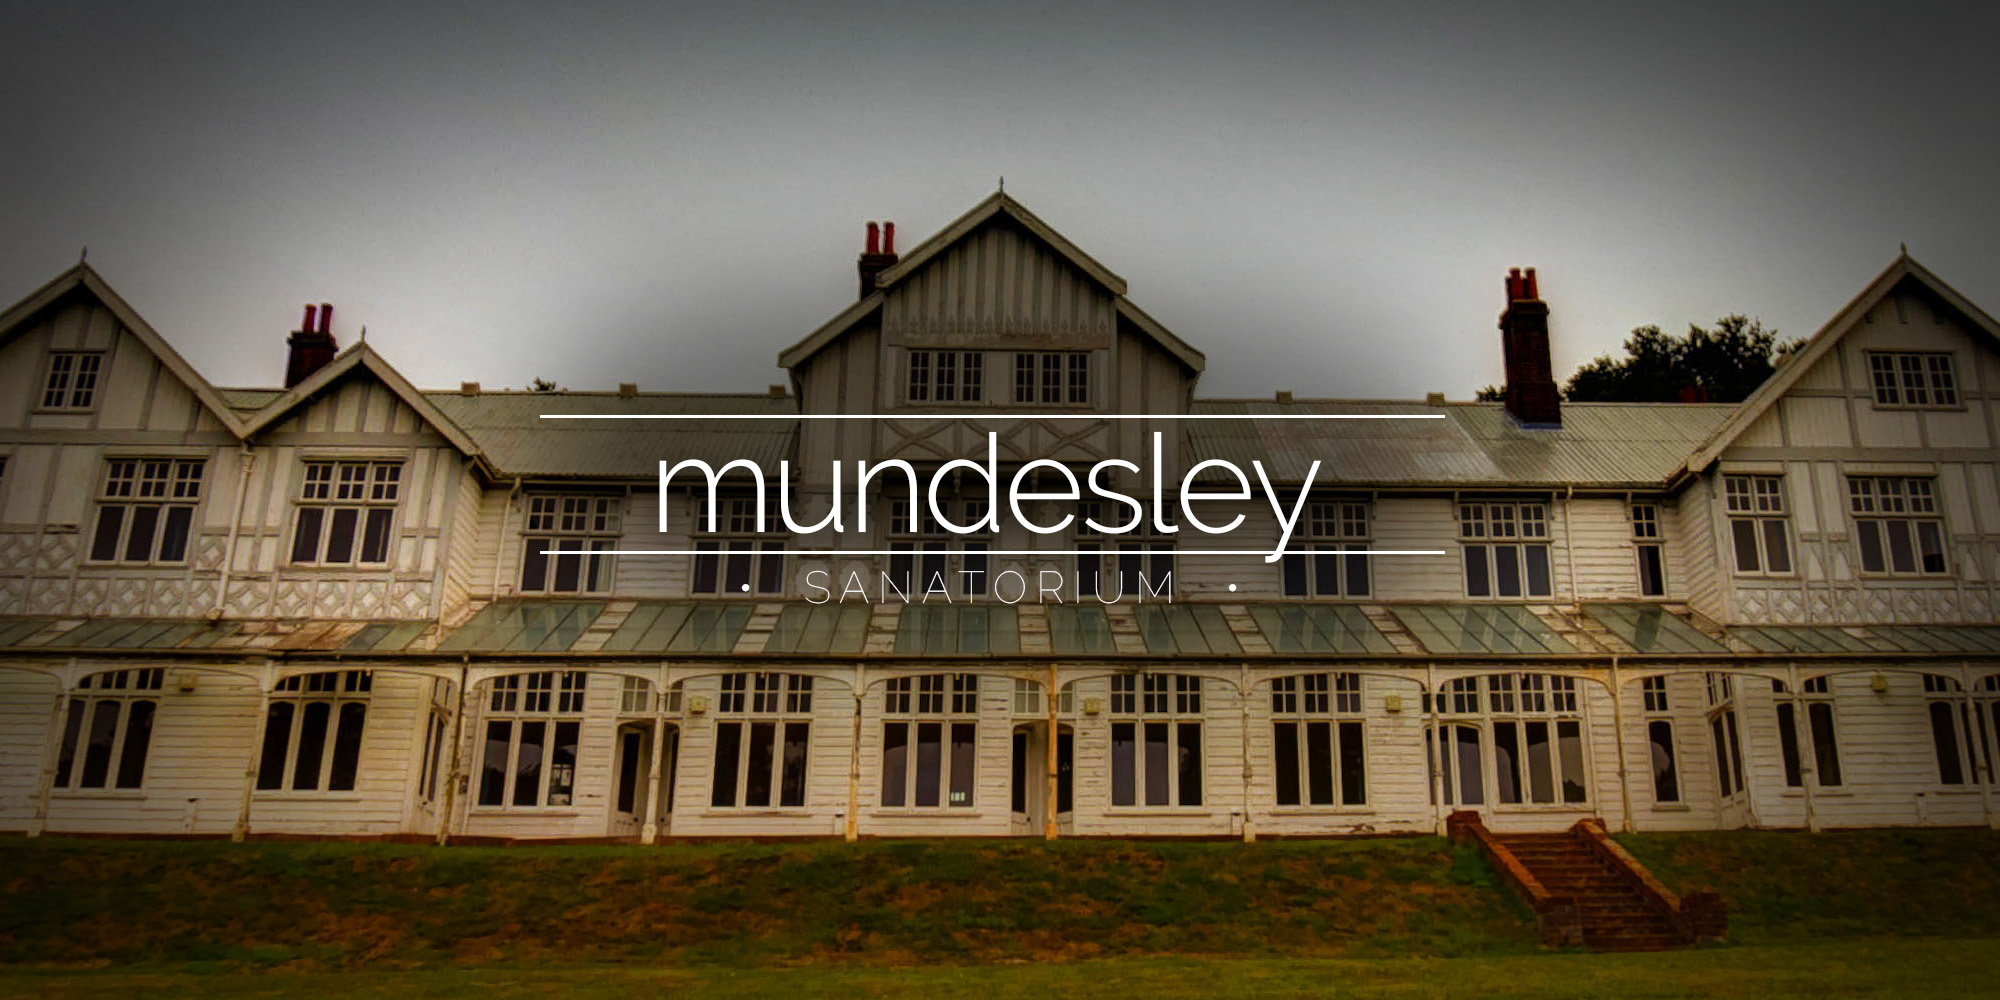 Mundesley Sanatorium, Norfolk, UK